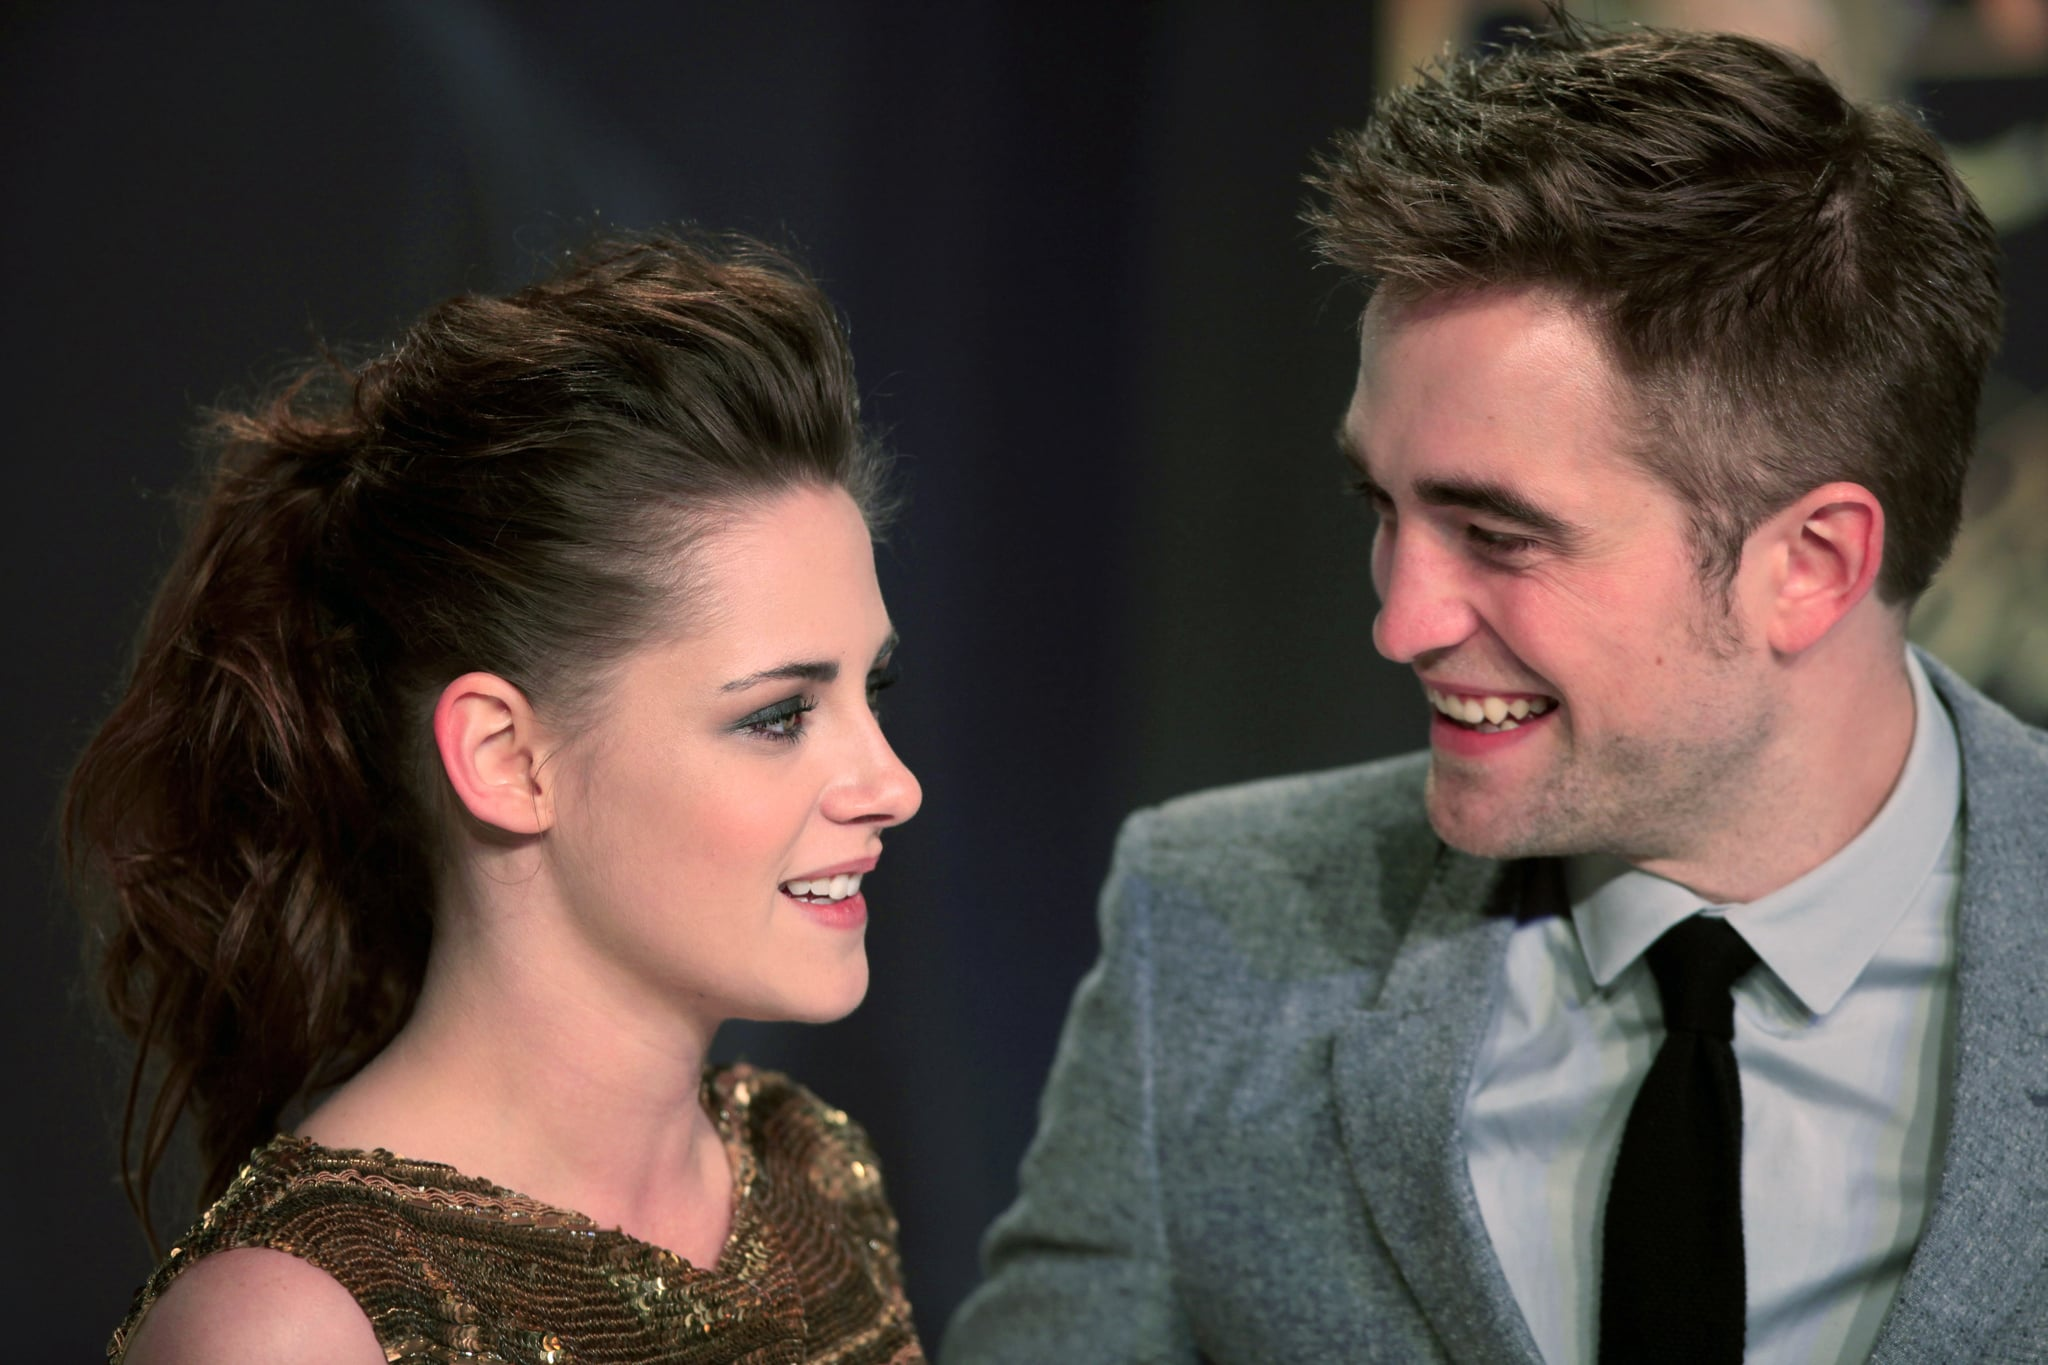 US actress Kristen Stewart (L) and British actor Robert Pattinson pose prior to the German premier of